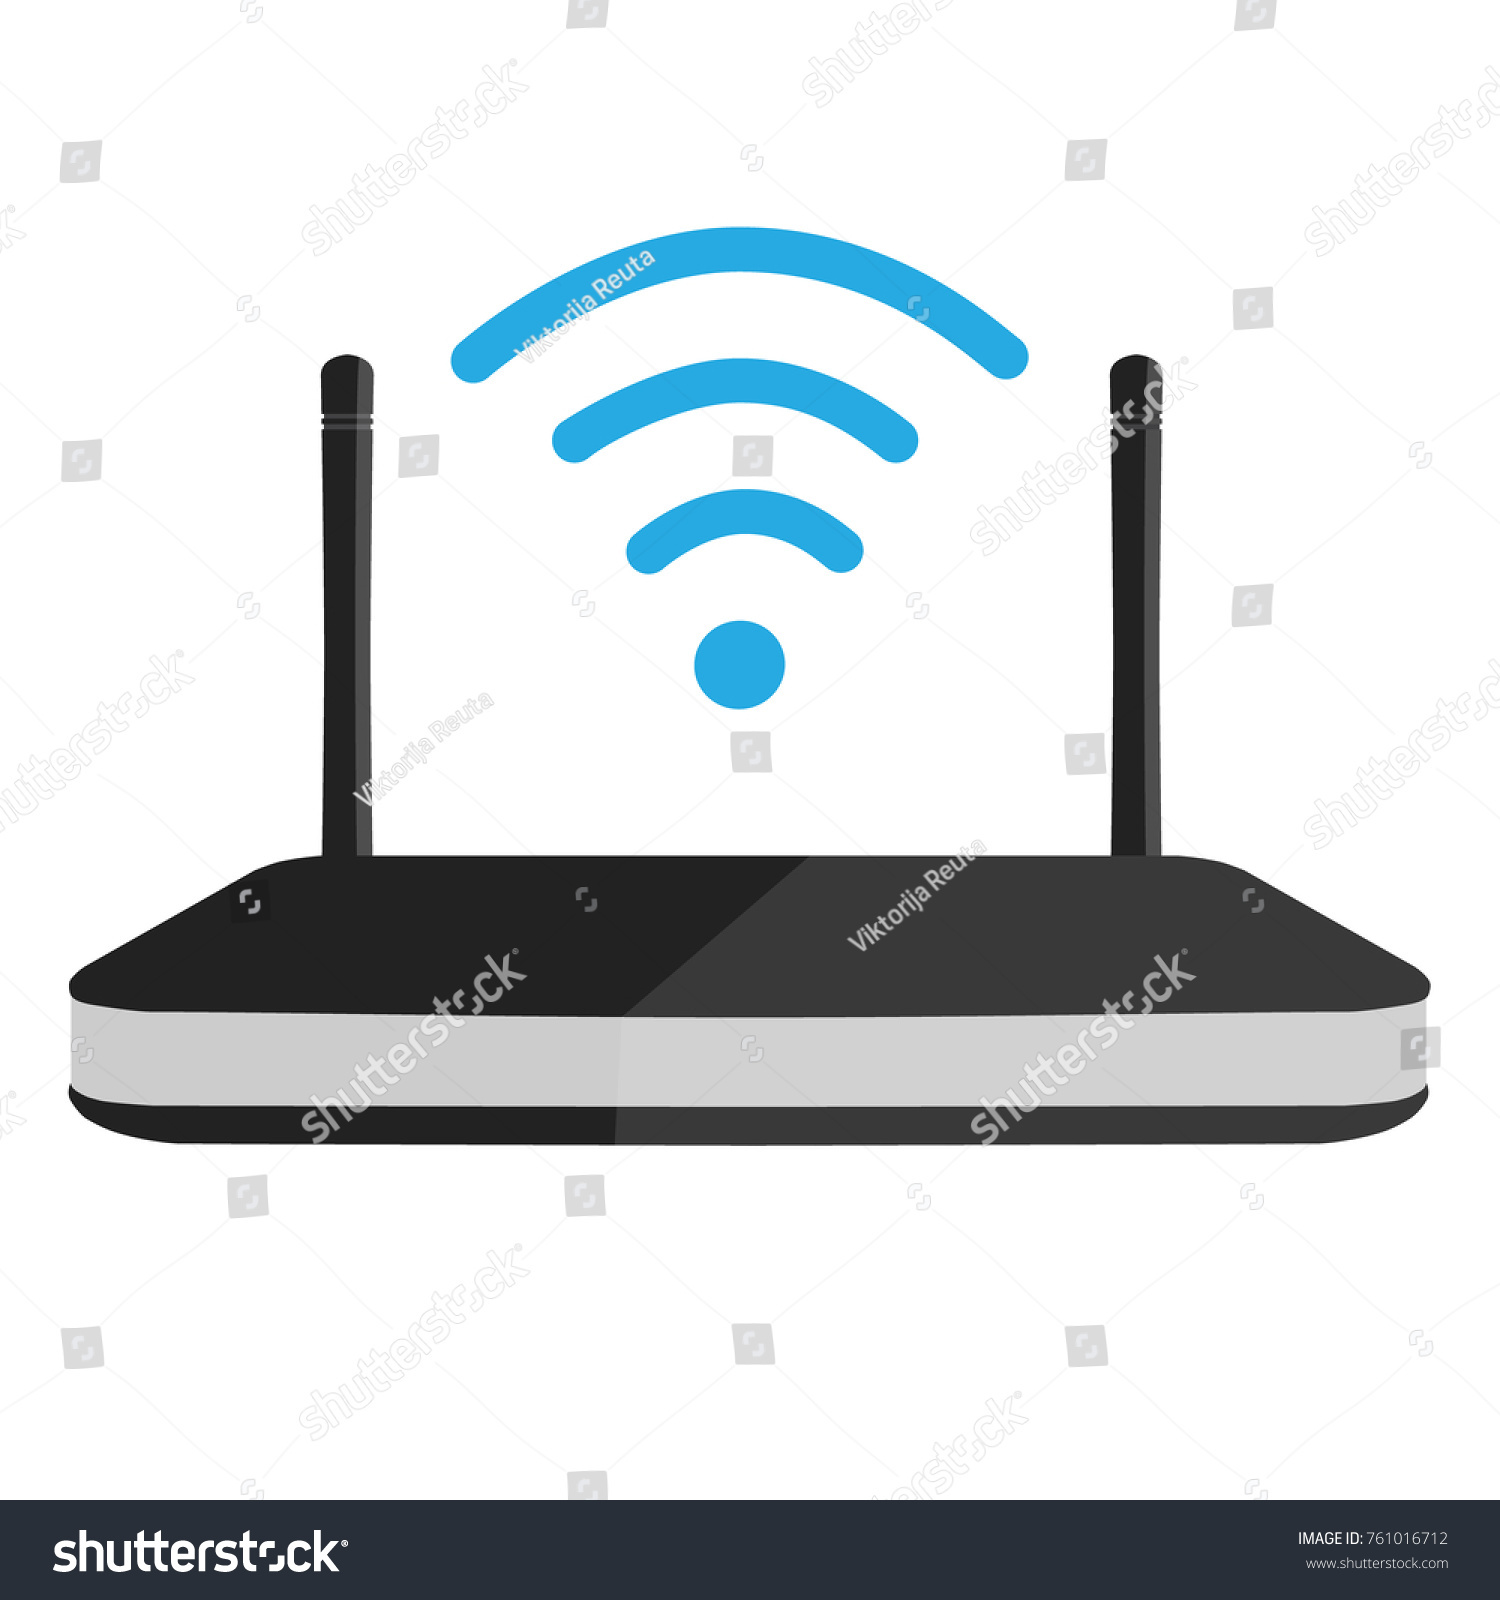 Royalty Free Stock Illustration Of Raster Illustration Wifi Router